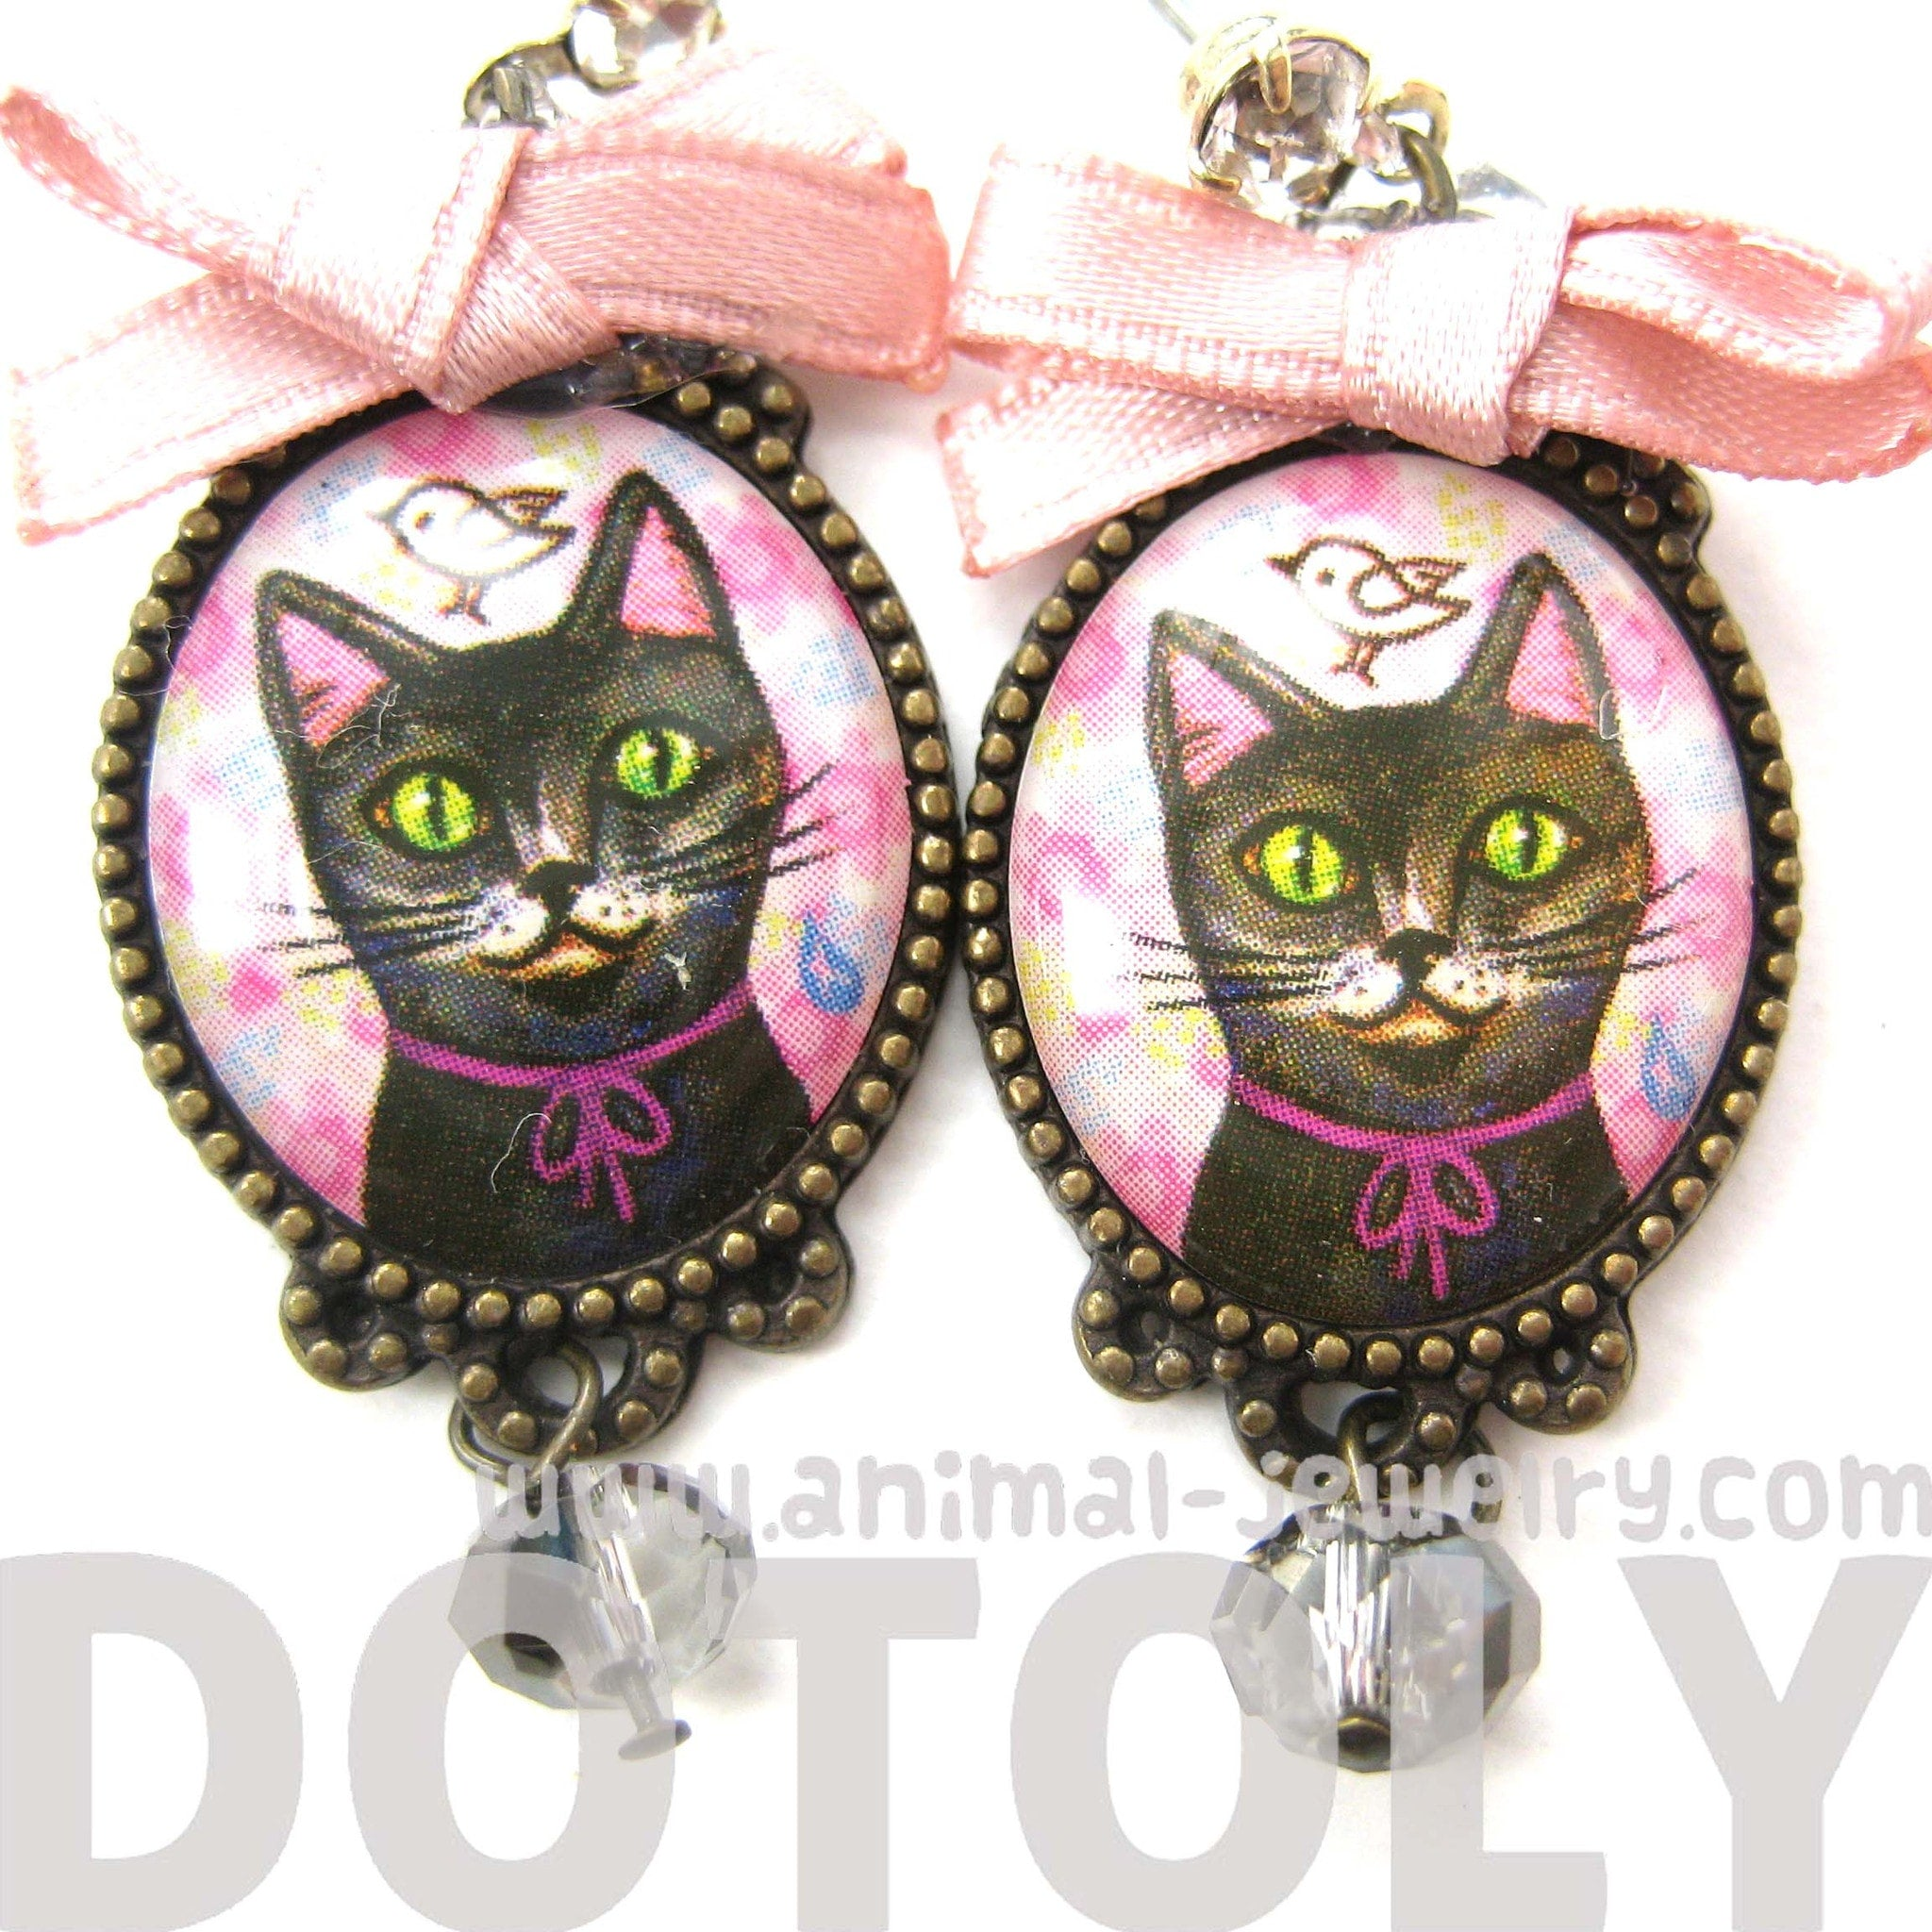 Kitty Cat Portrait Illustrated Drop Stud Earrings in Black with Bows | Animal Jewelry